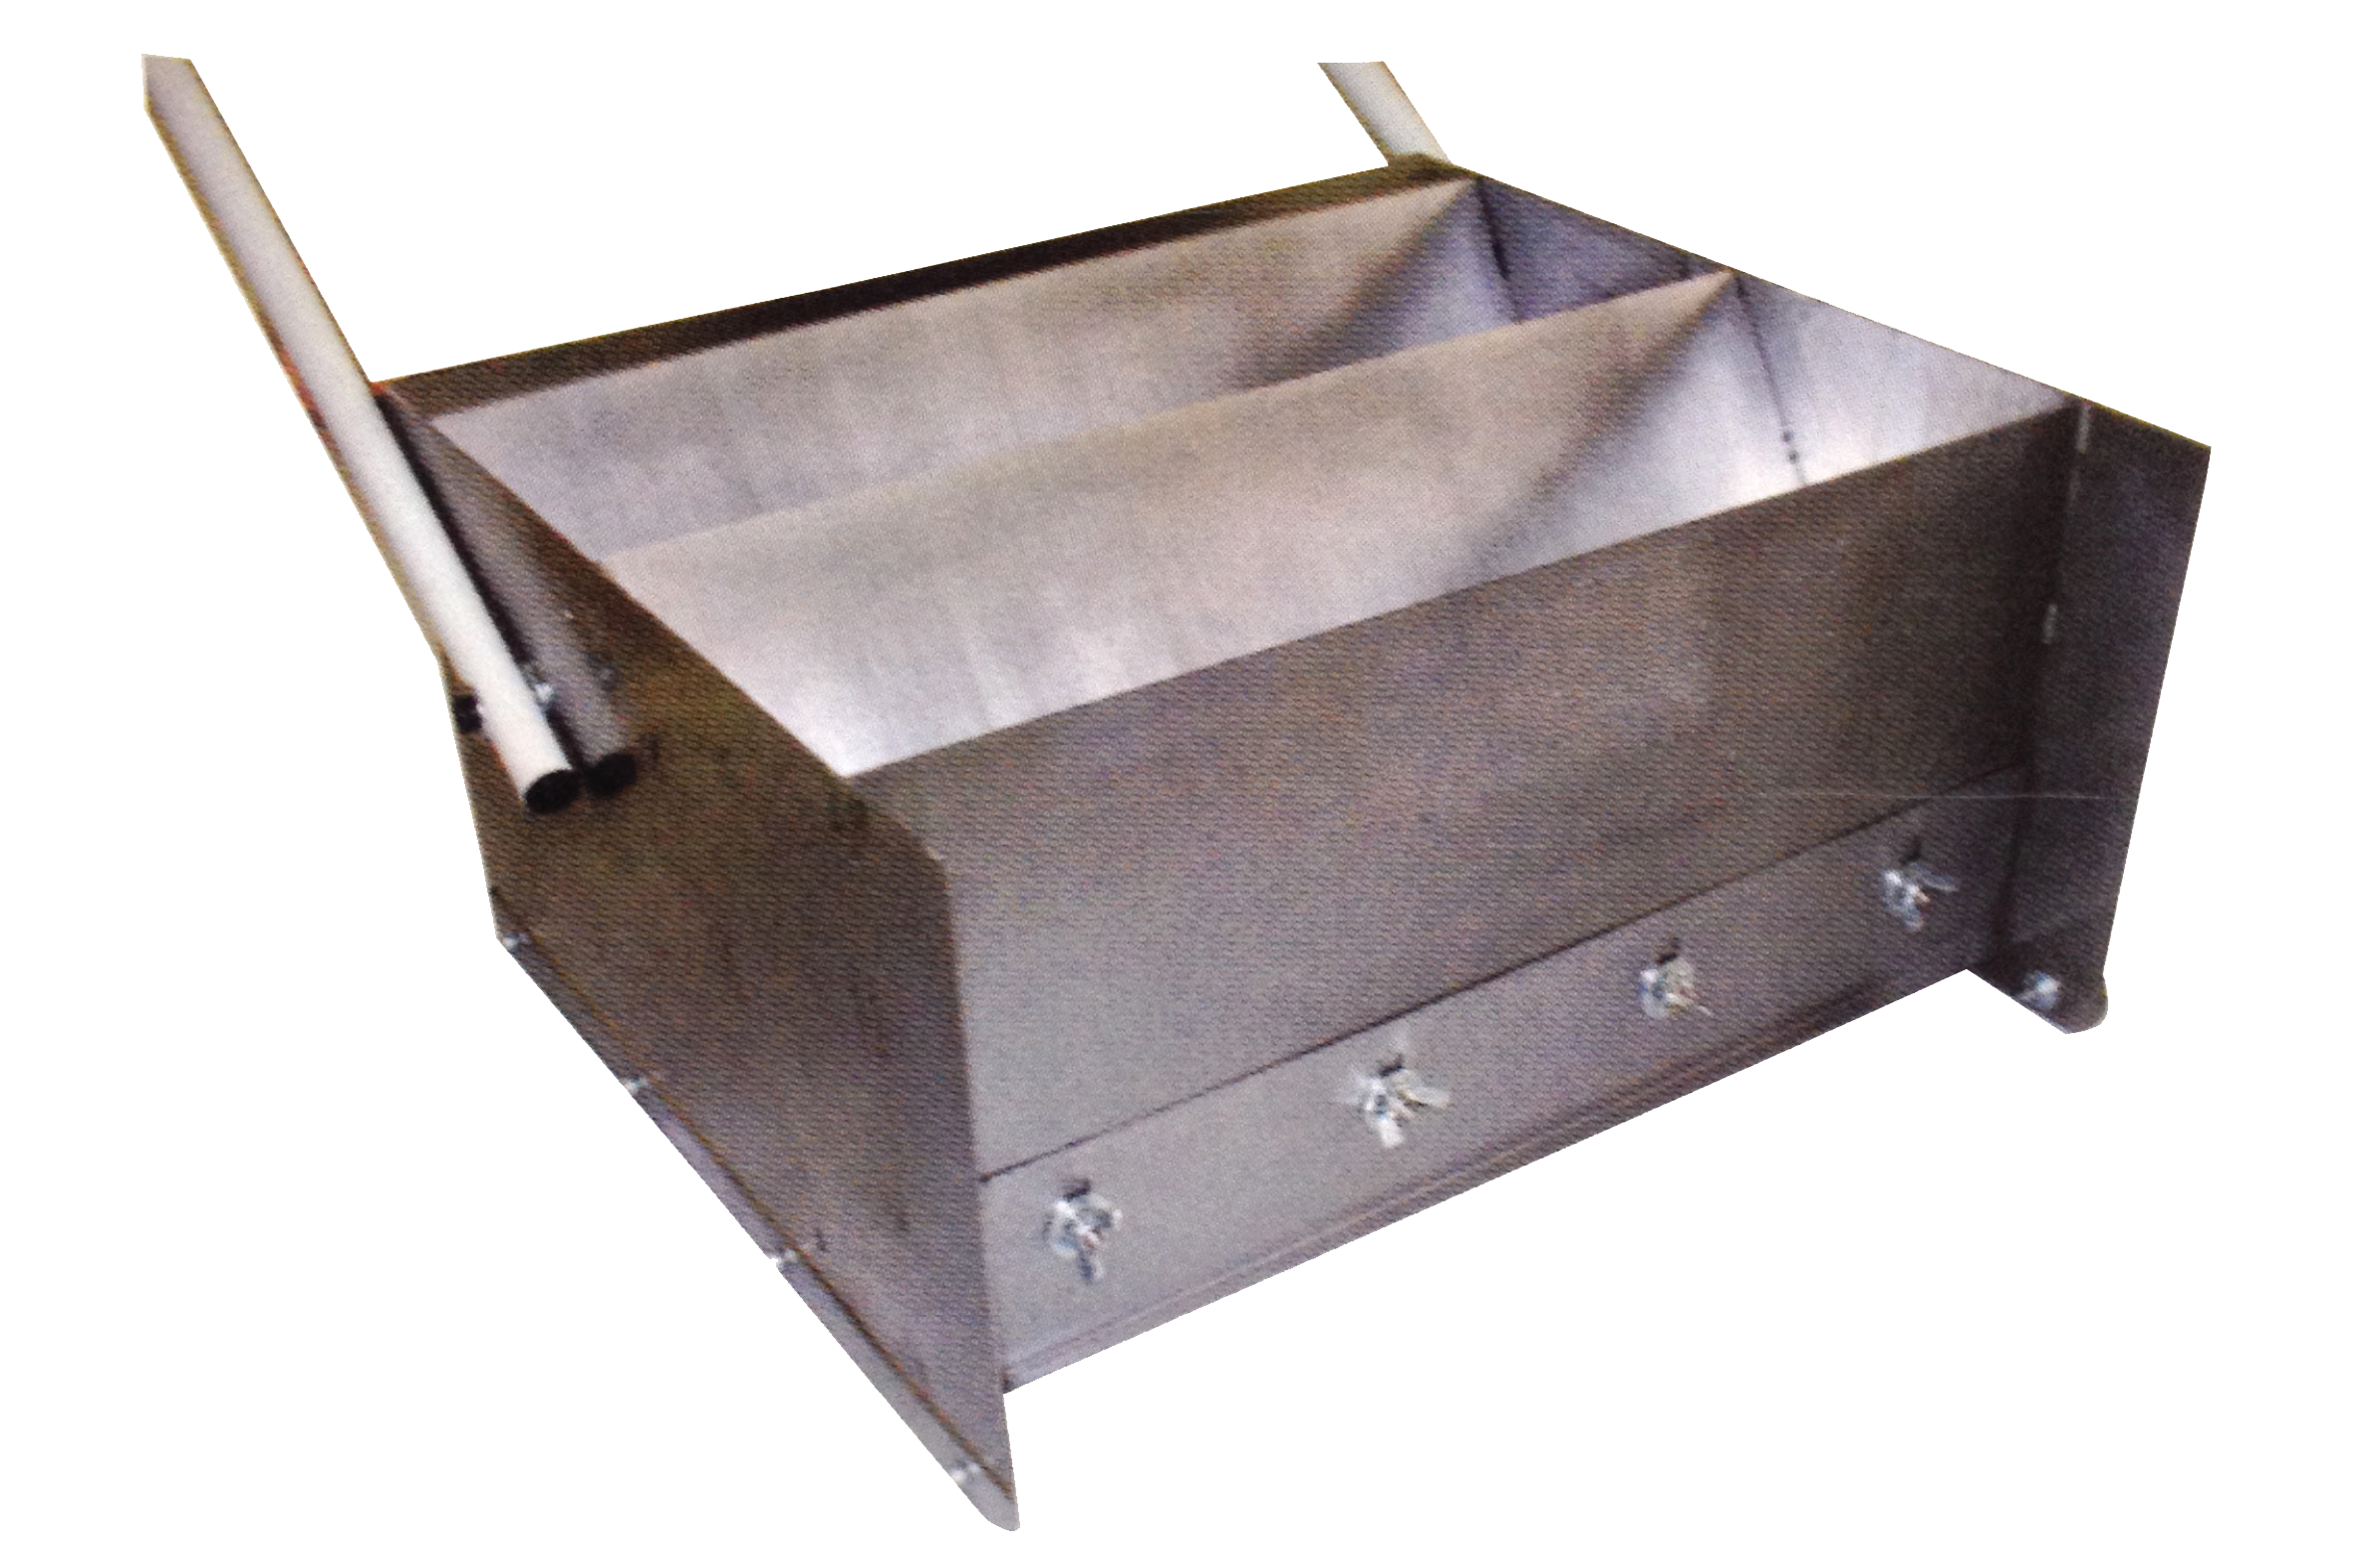 Steel Mortar Boxes : Products calibur technical equipment